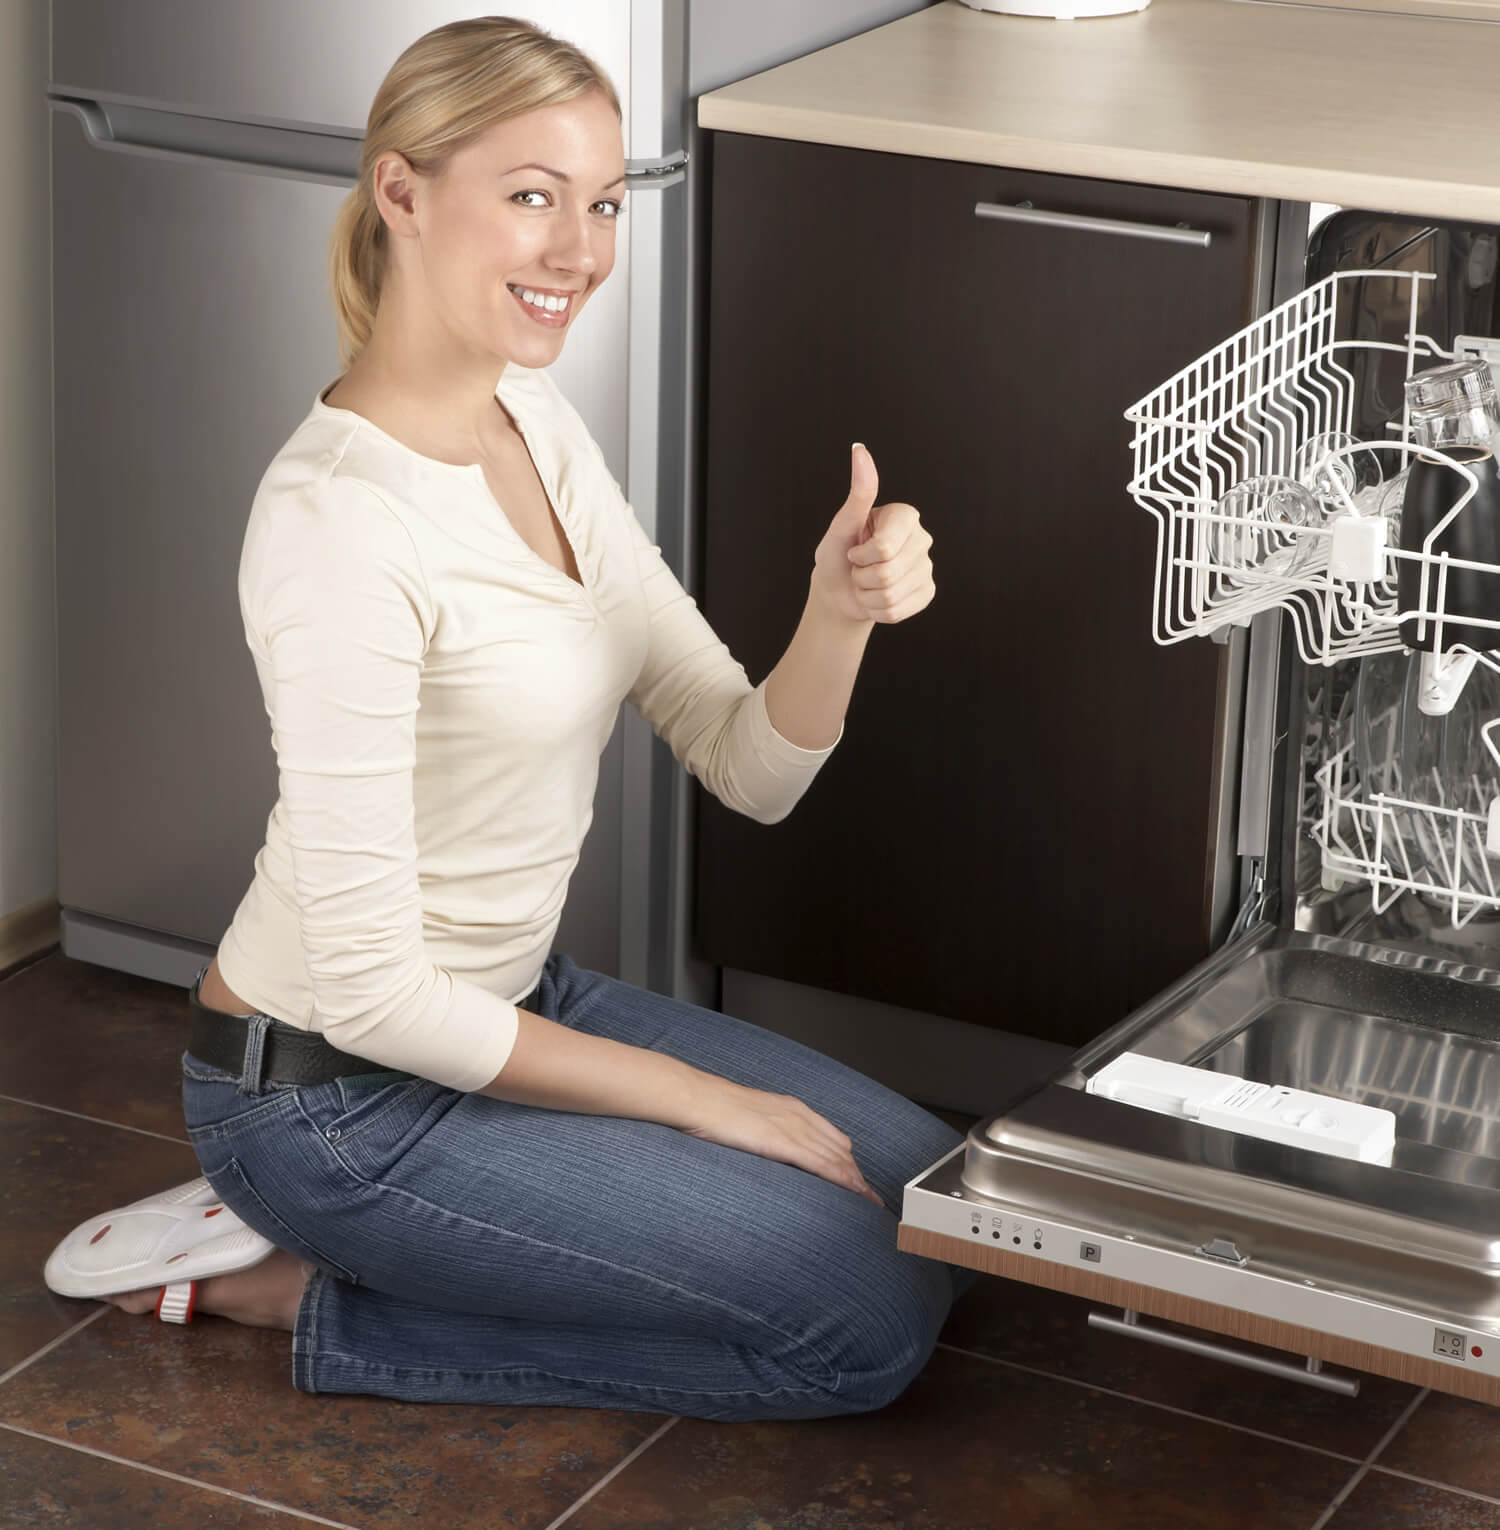 kitchen appliance repair antique cabinets for sale how dishwashers work - applianceassistant.com ...